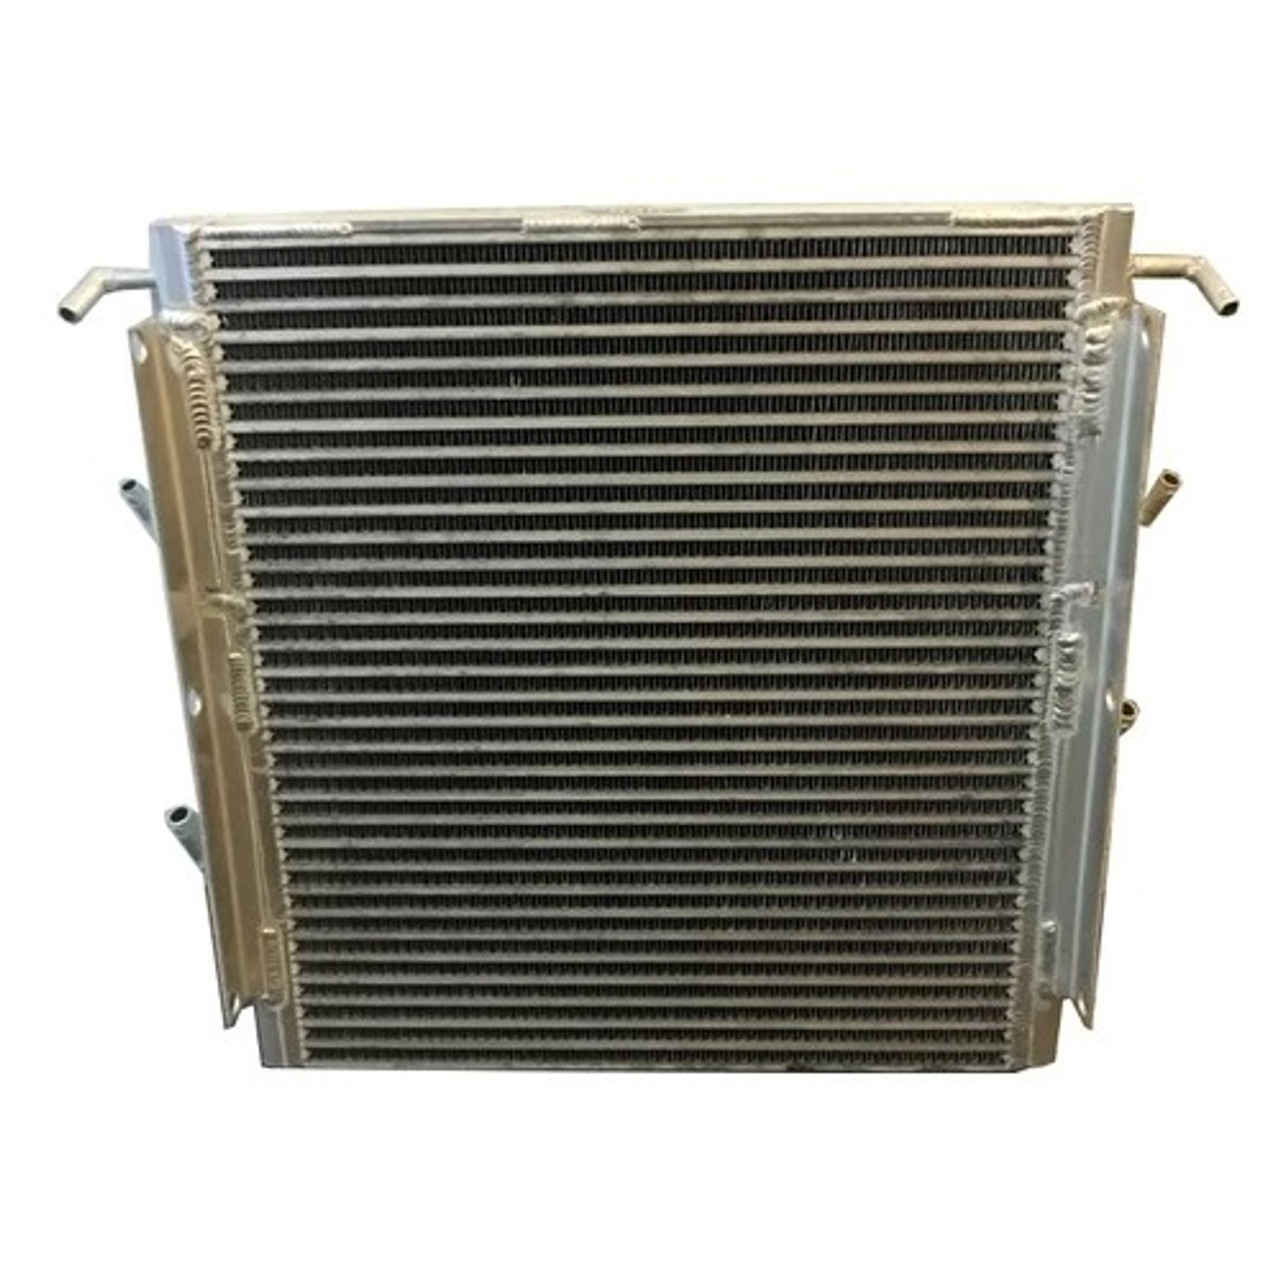 Radiator and Oil Cooler